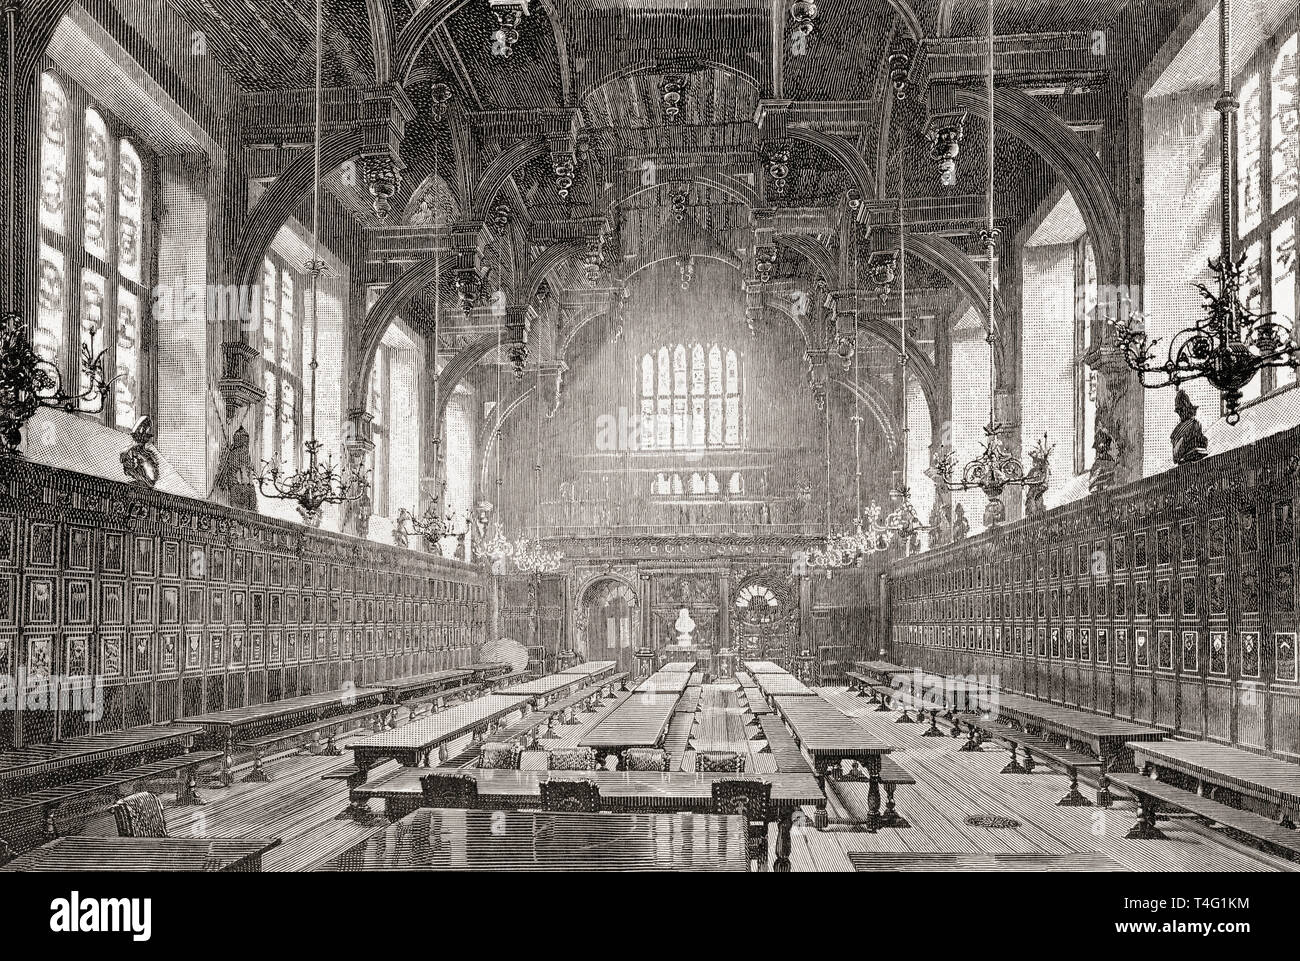 The Great Hall of the Middle Temple, London, England, seen here in the 19th century.  From London Pictures, published 1890 - Stock Image